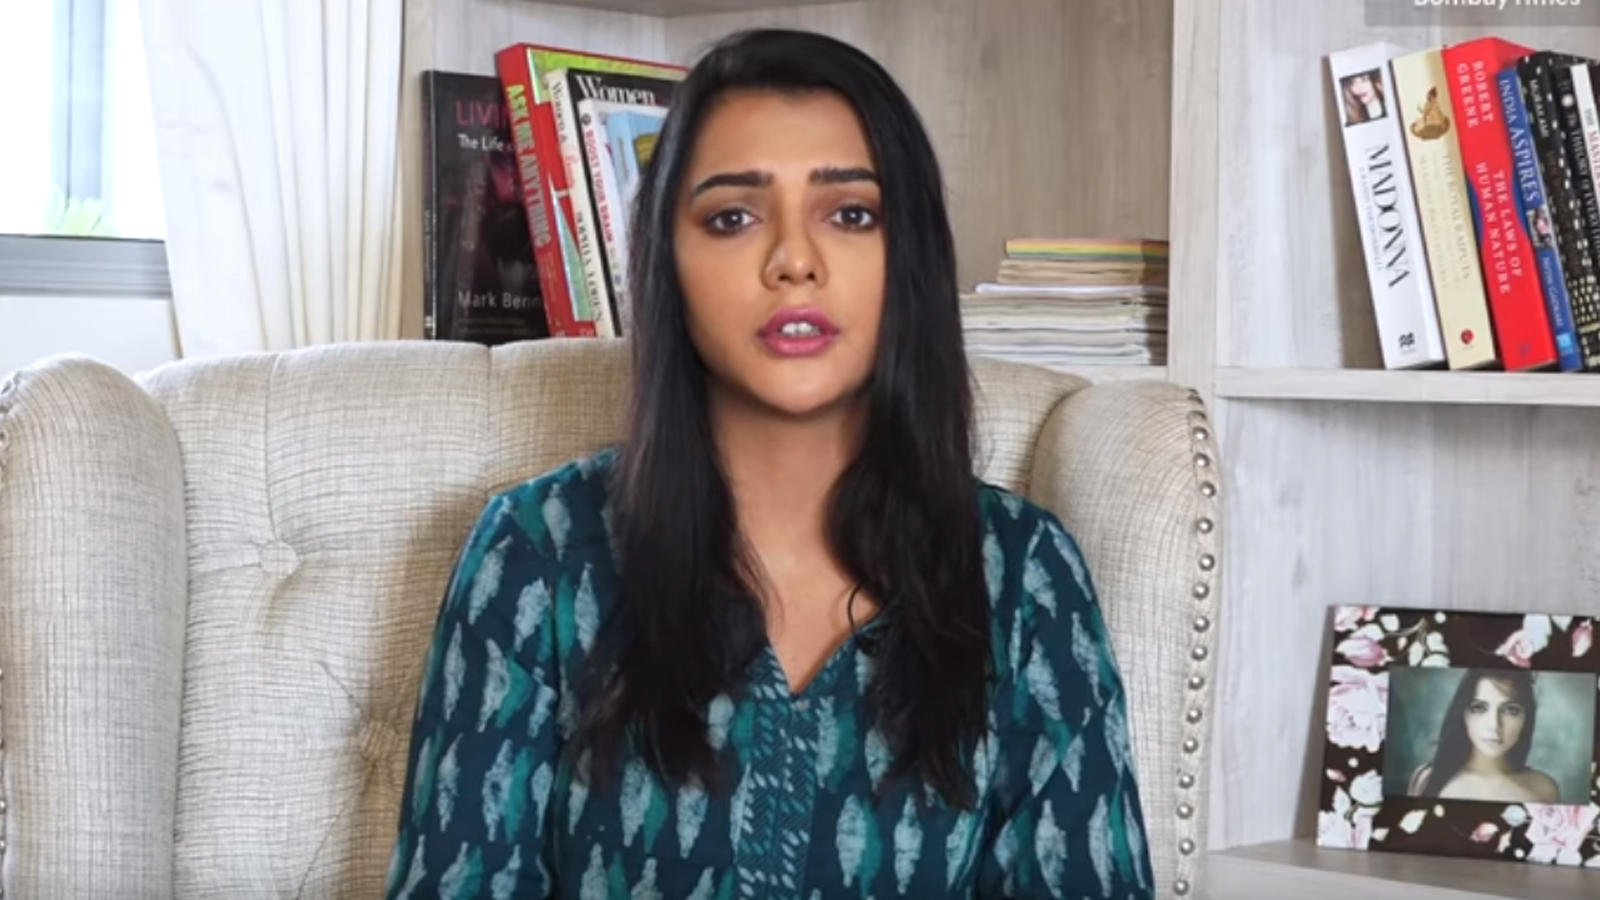 Actress Ruhii Singh stalked by Anurag Kashyap's imposter | Hindi Movie News  - Times of India